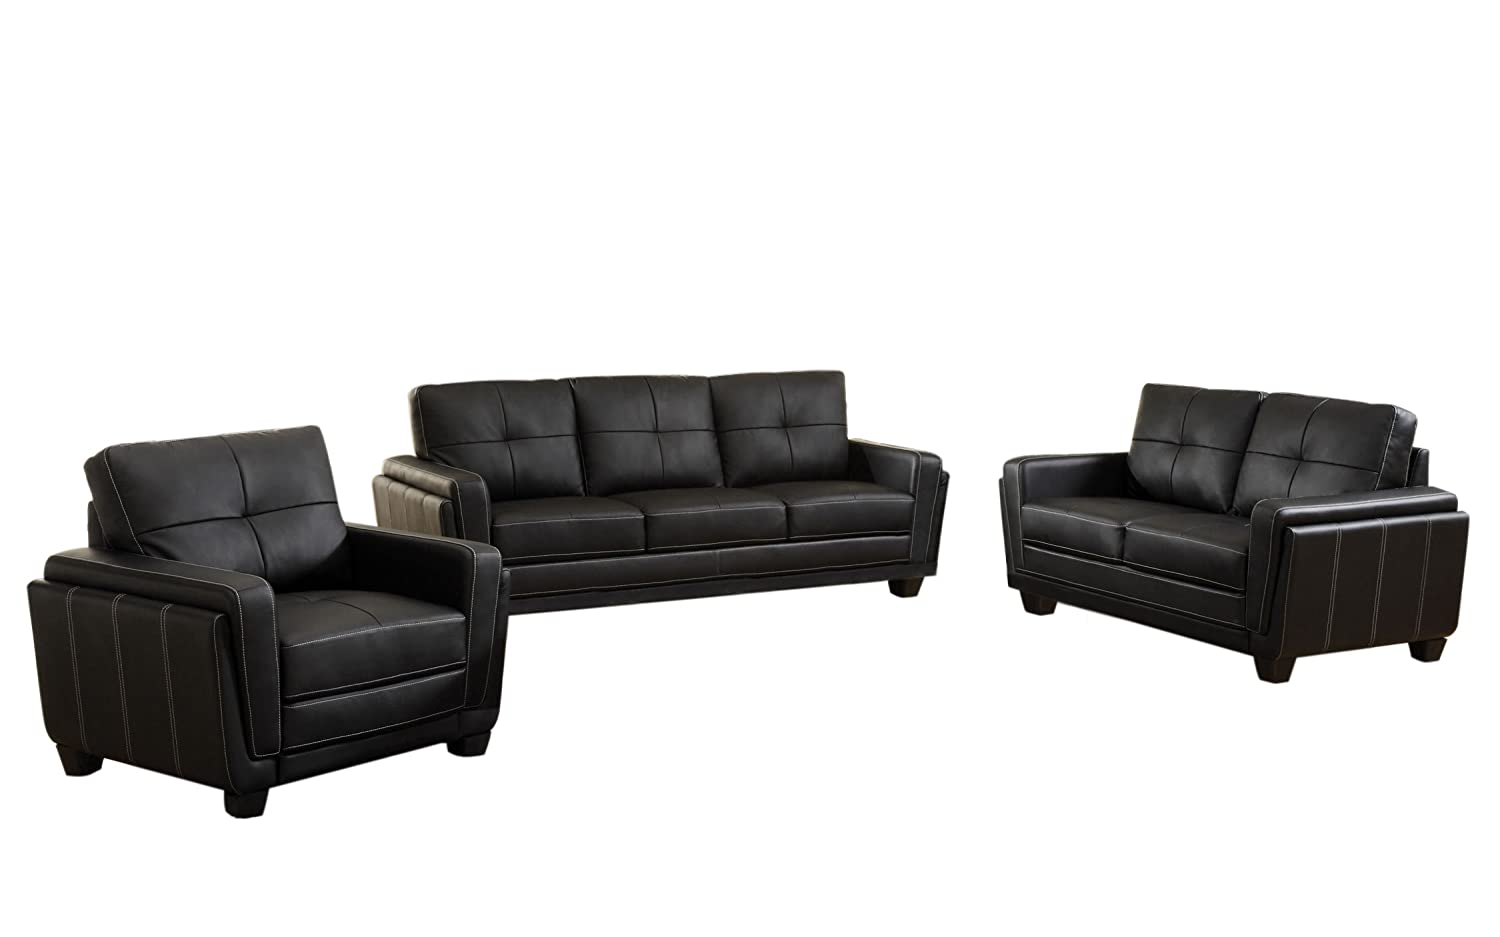 Furniture of America Mitcham 3-Piece Leatherette Sofa Set, Black